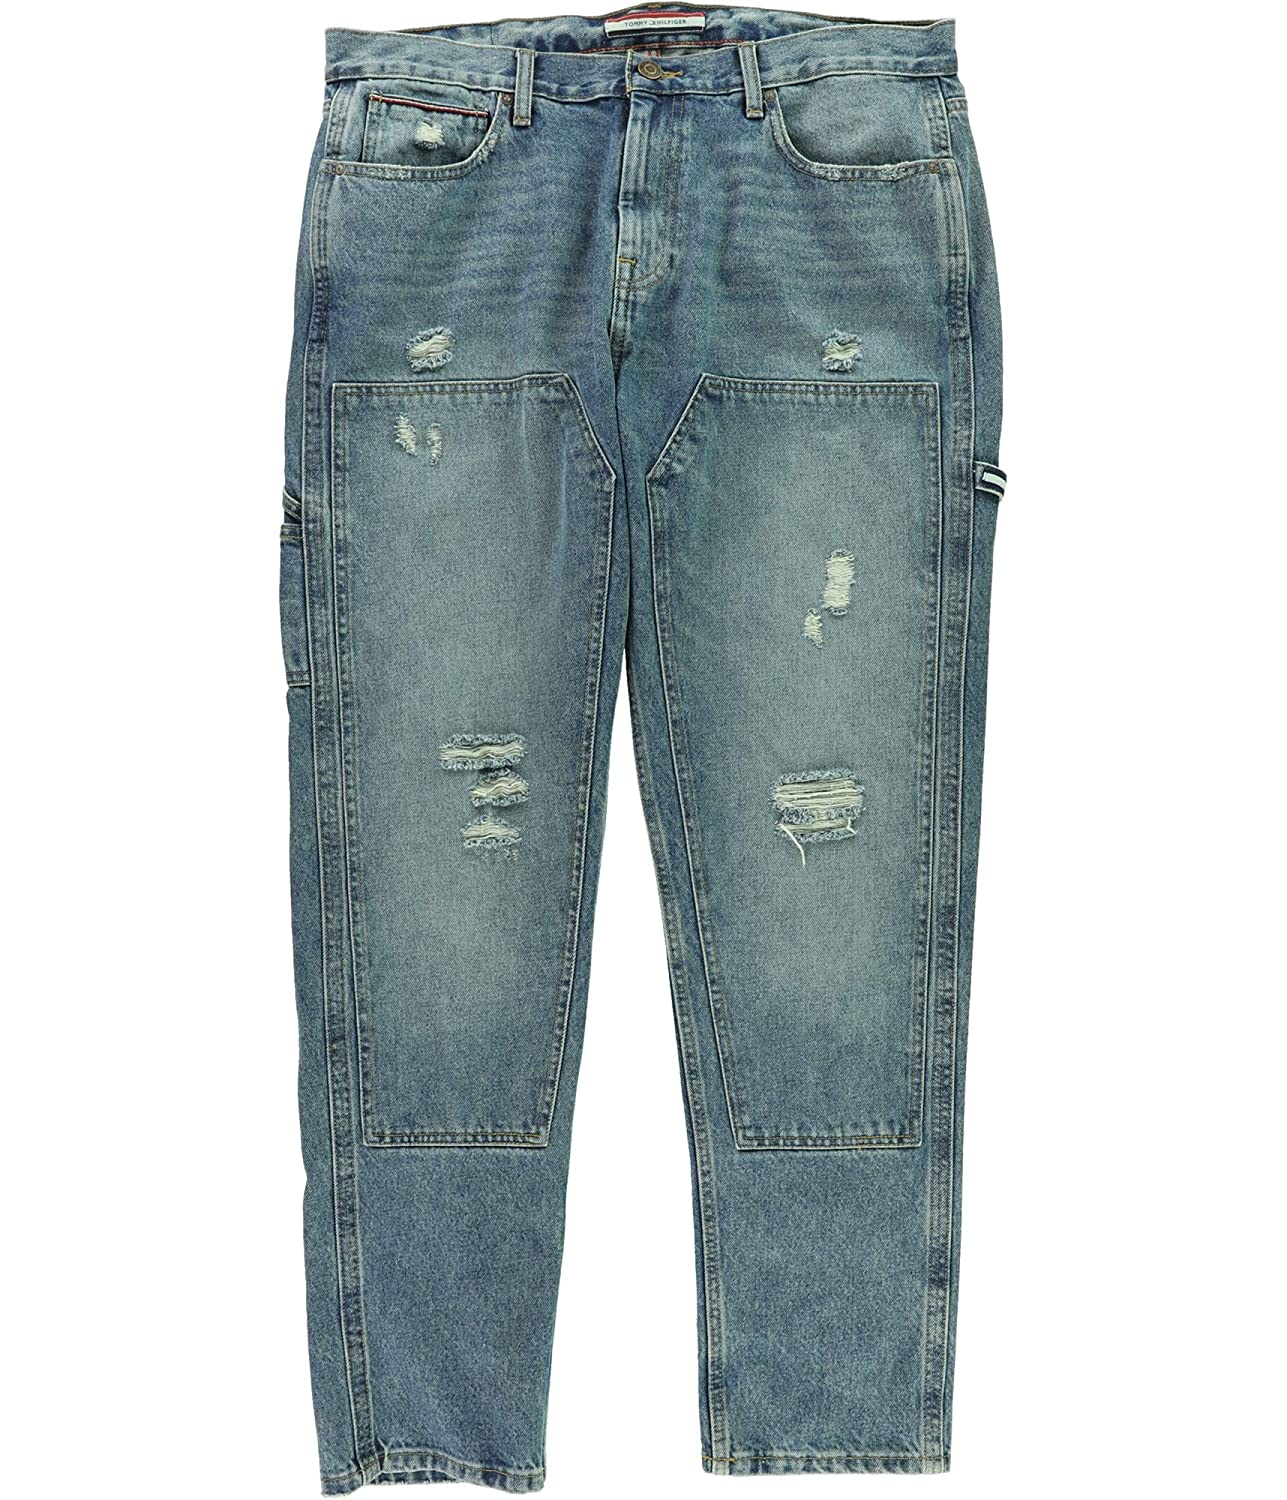 Tommy Hilfiger Mens Distressed Relaxed Jeans